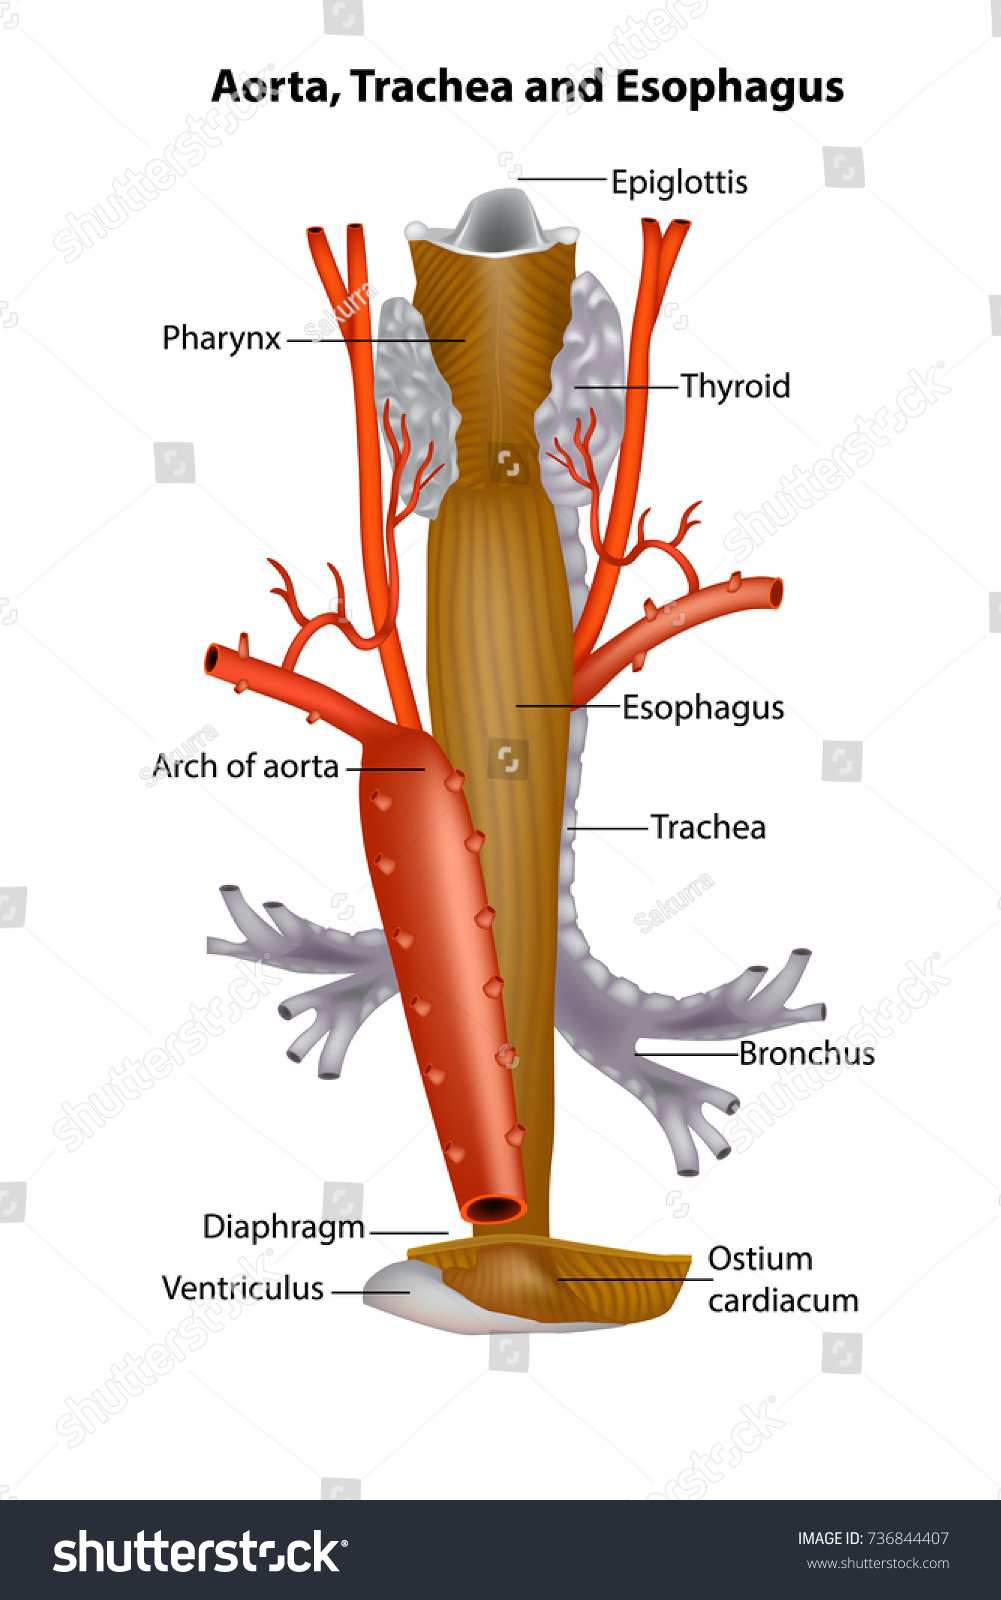 Anatomy Of Oesophagus Image collections - human body anatomy